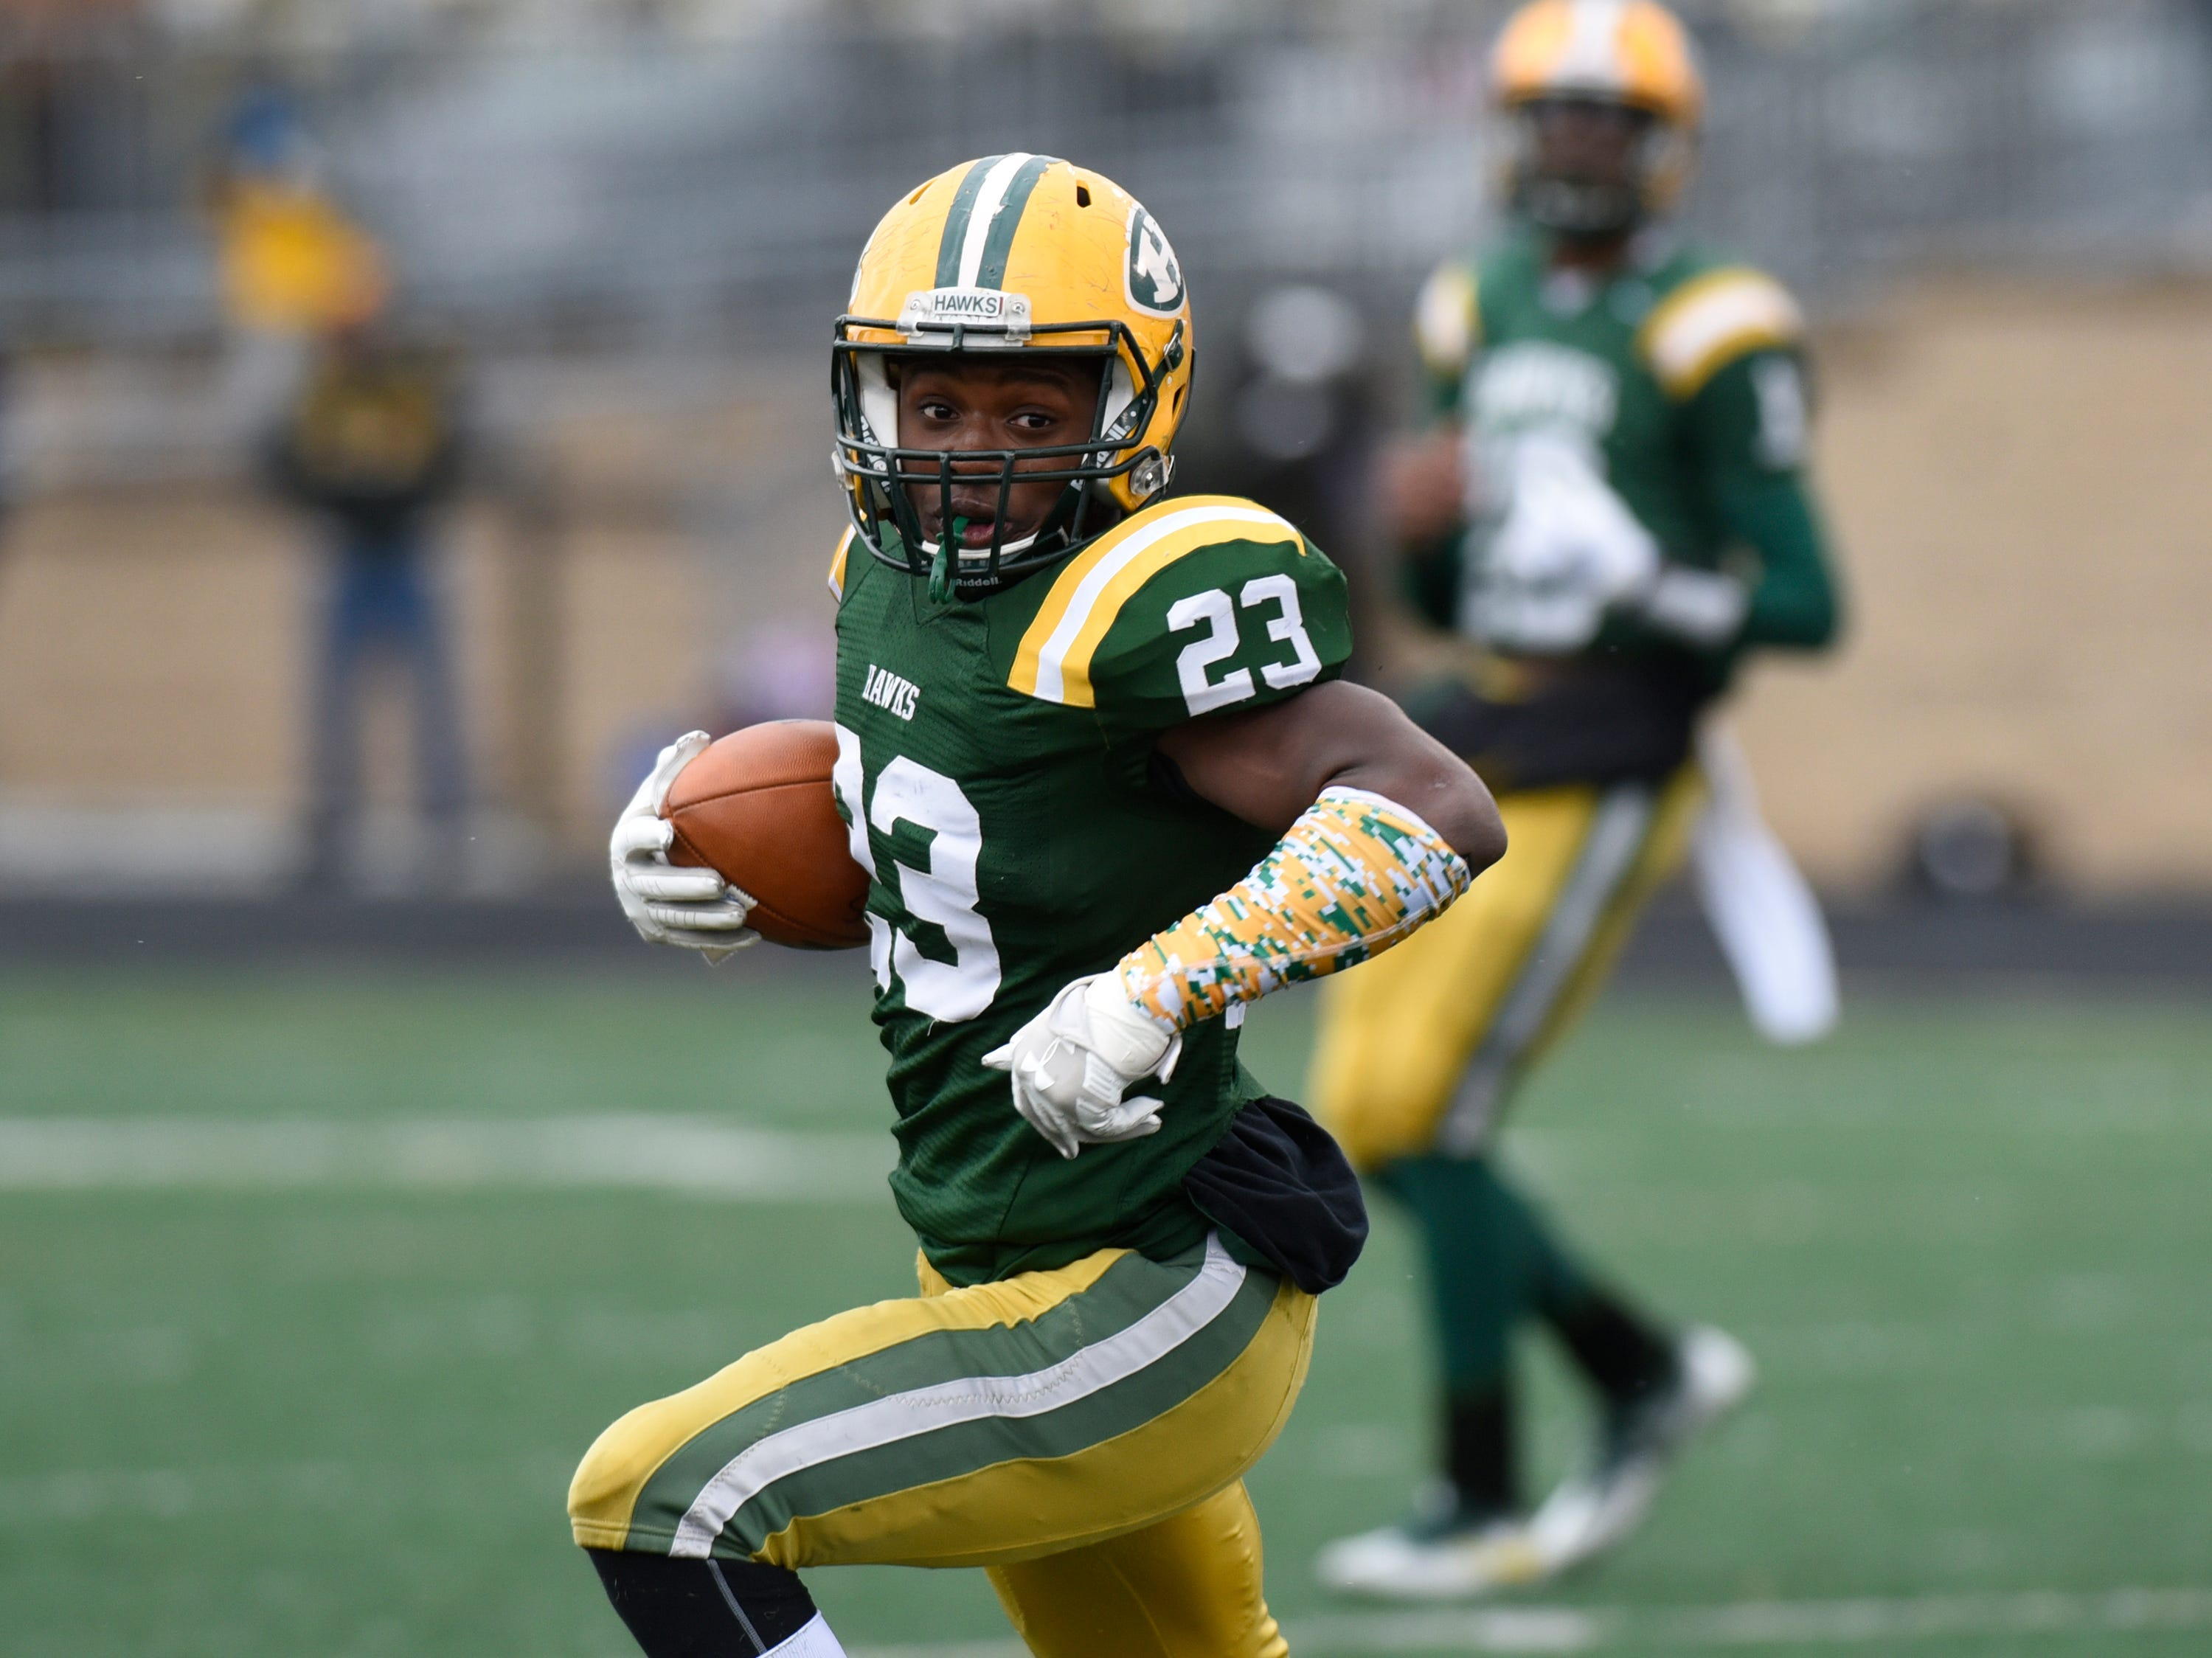 Farmington Harrison RB/DB Vincent Rawls (23) during second half of the Division 4 regional final played at Buller Field Nov. 10, 2018